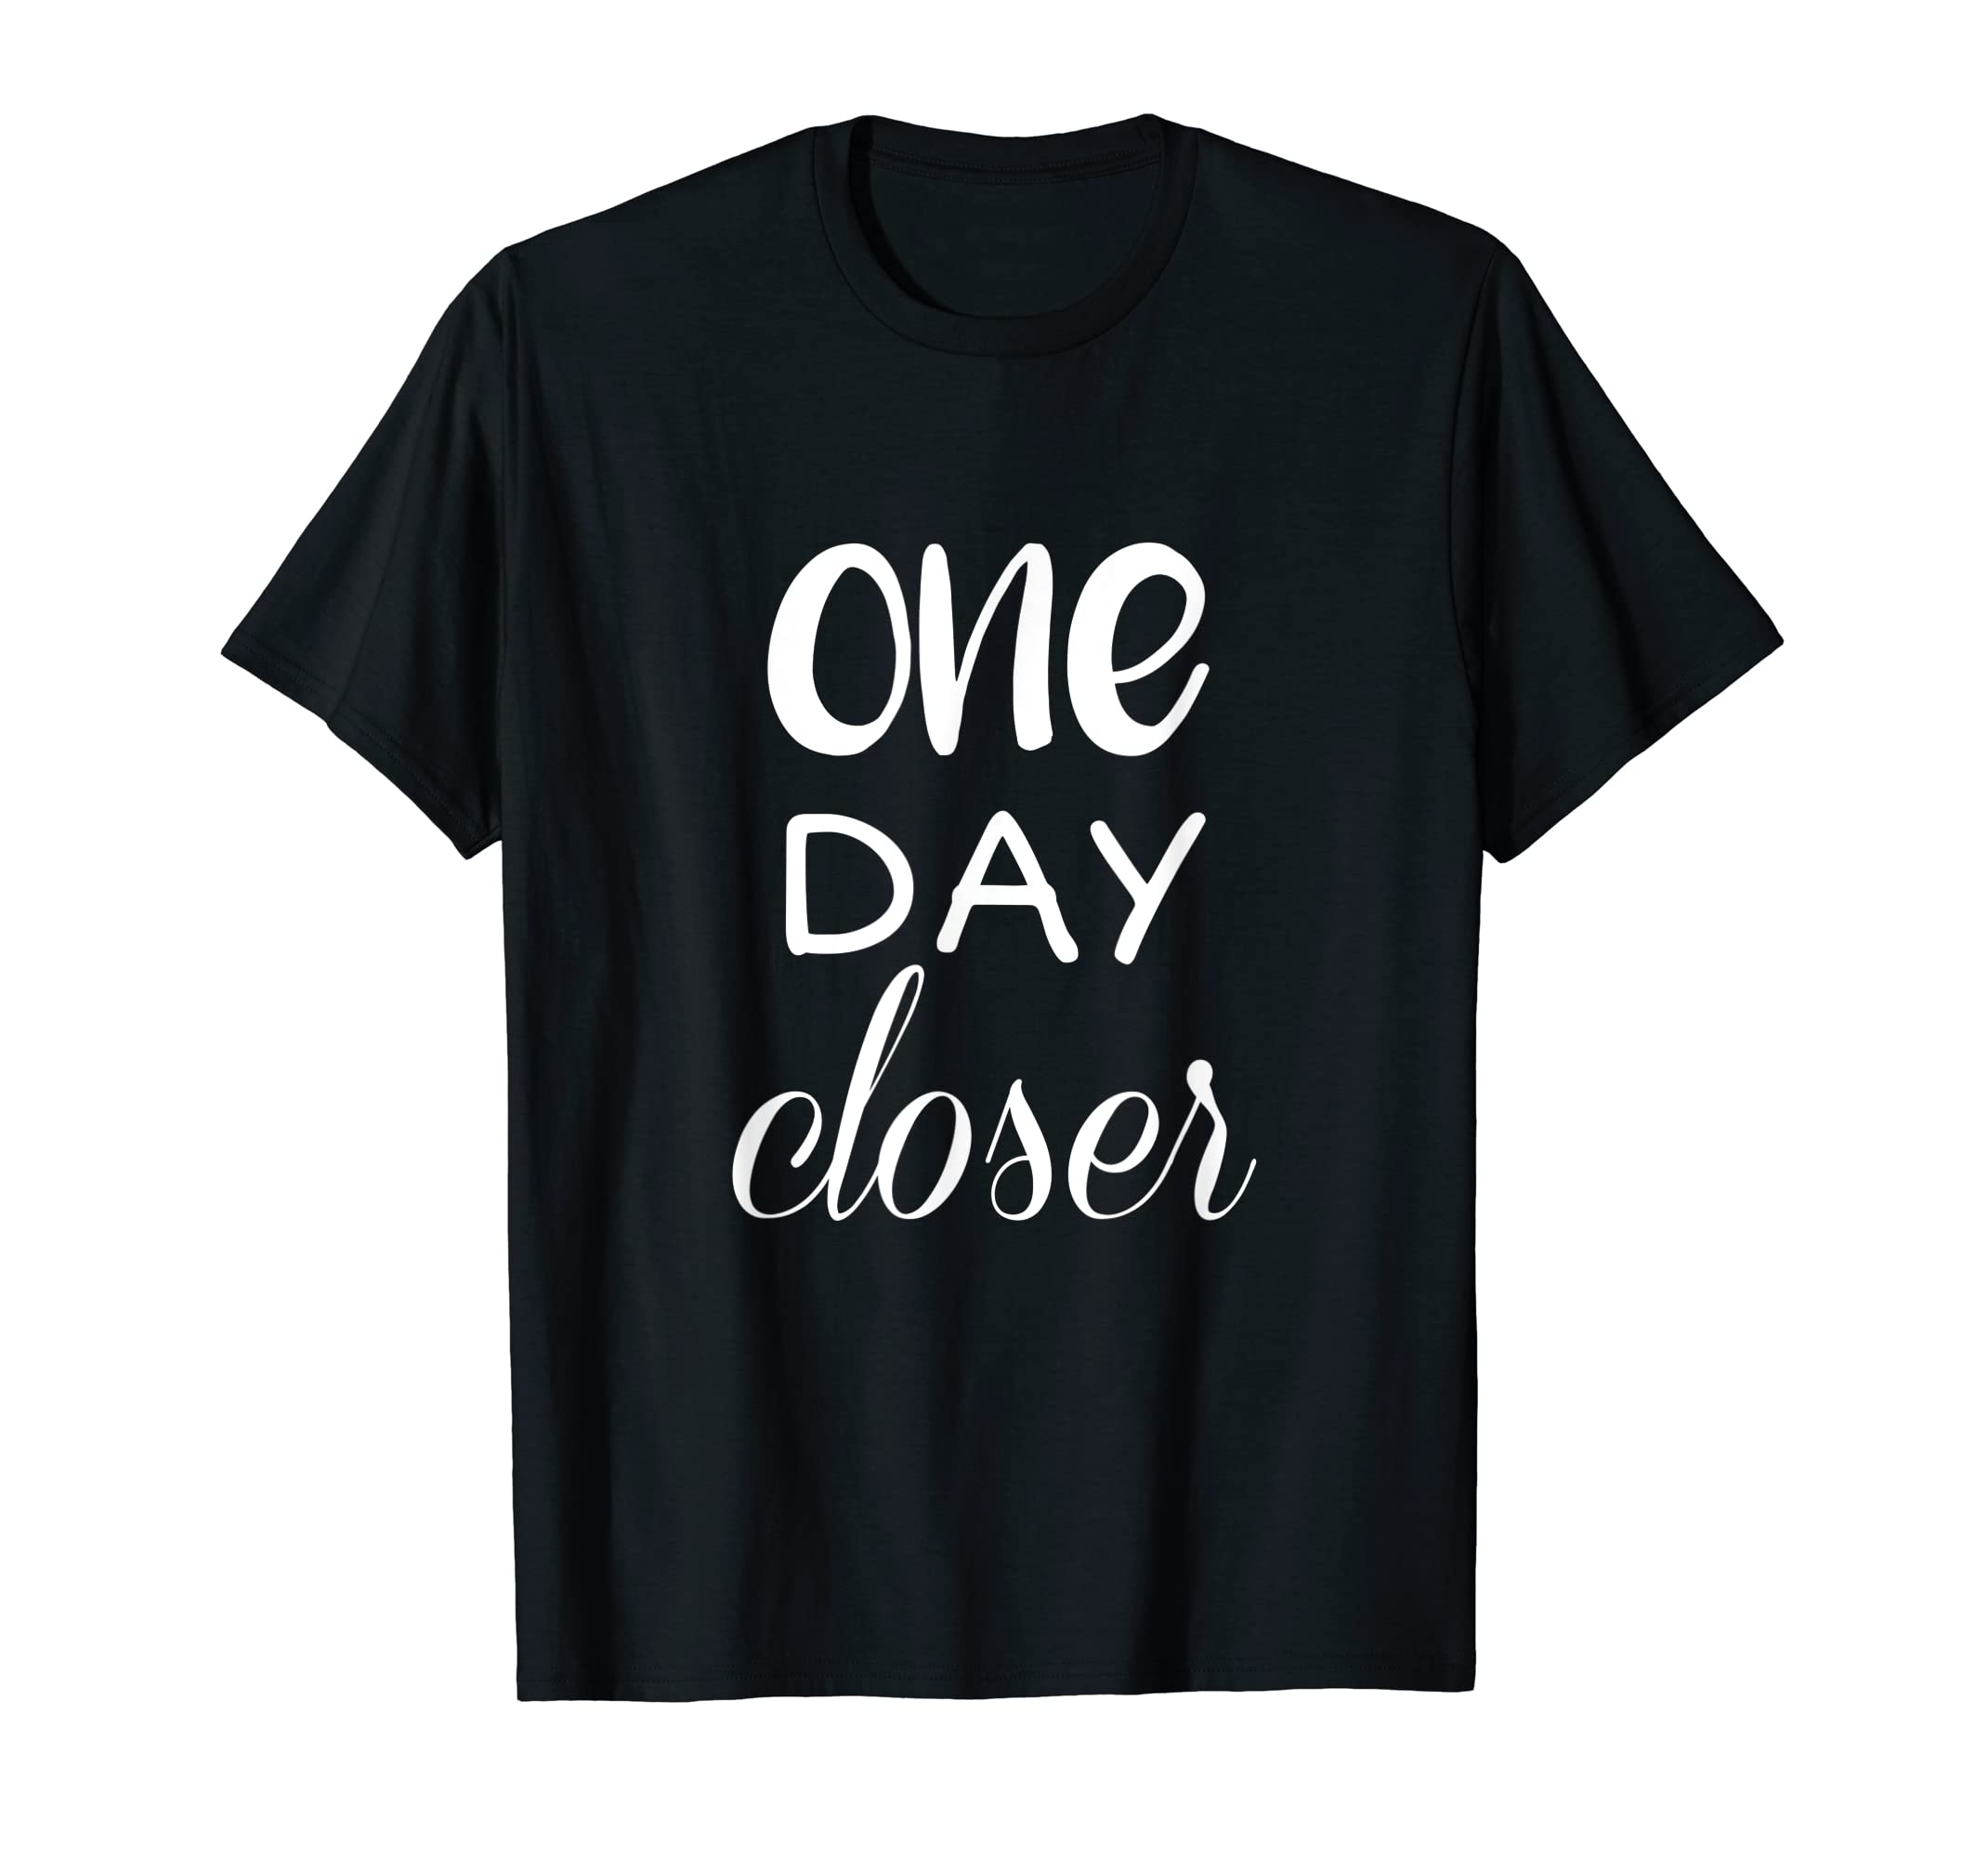 1f8c1fe6d Amazon.com: One day closer: Clothing